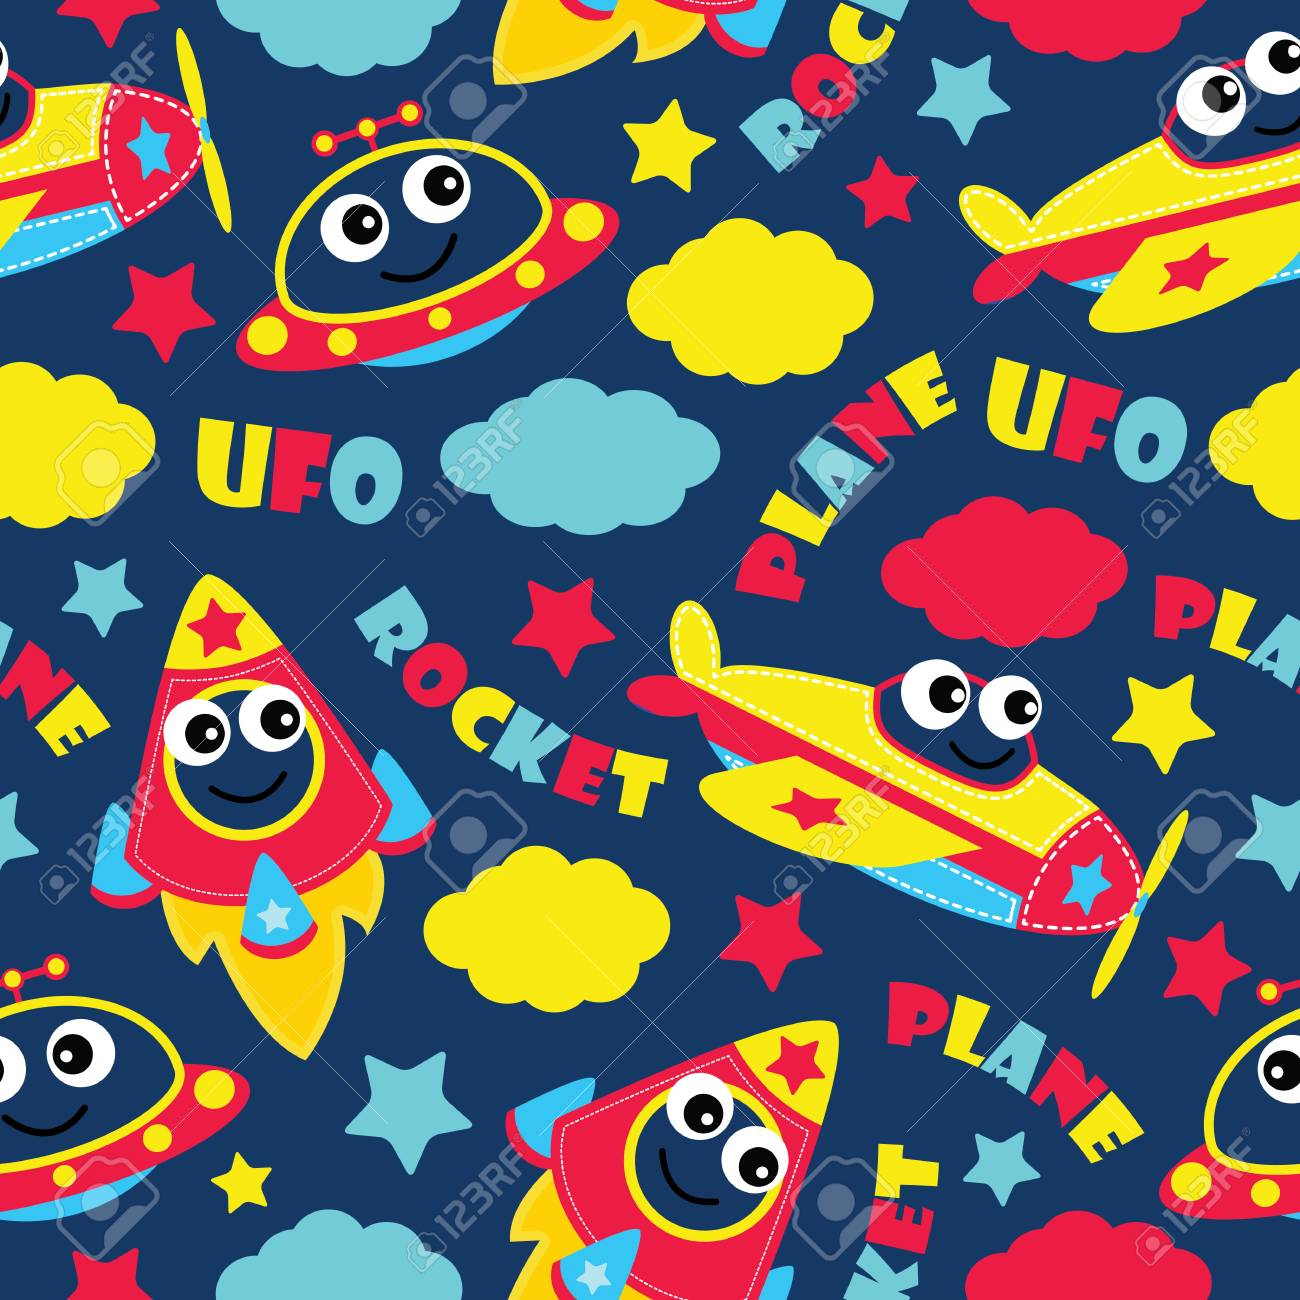 Seamless Pattern Of Cute Plane Rocket And Ufo On Blue Background Vector Cartoon Illustration For